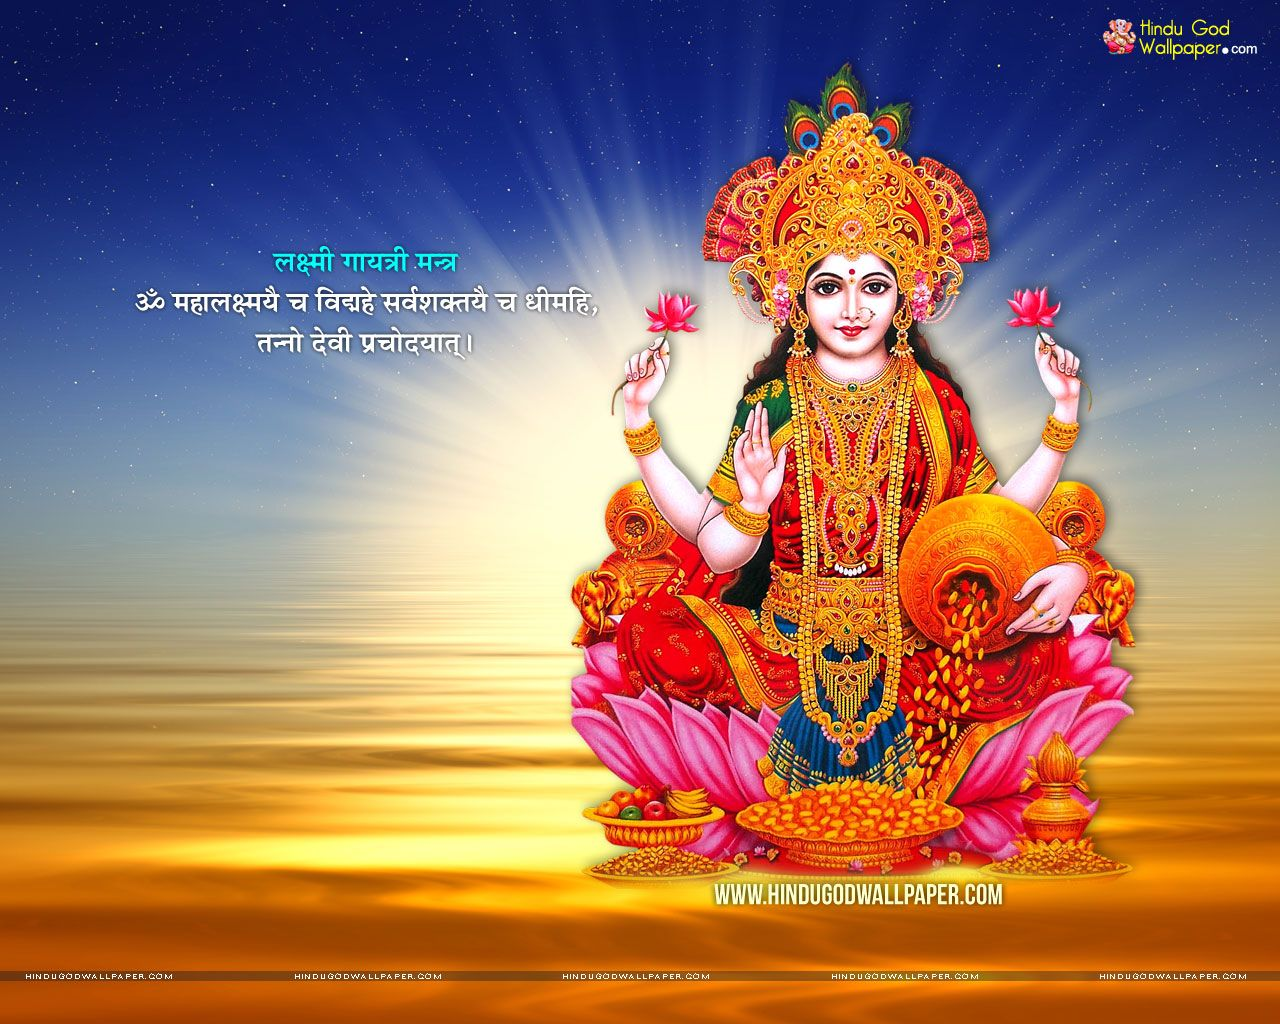 Jai Maa Laxmi Wallpaper Free Download For Desktop Wallpapers In